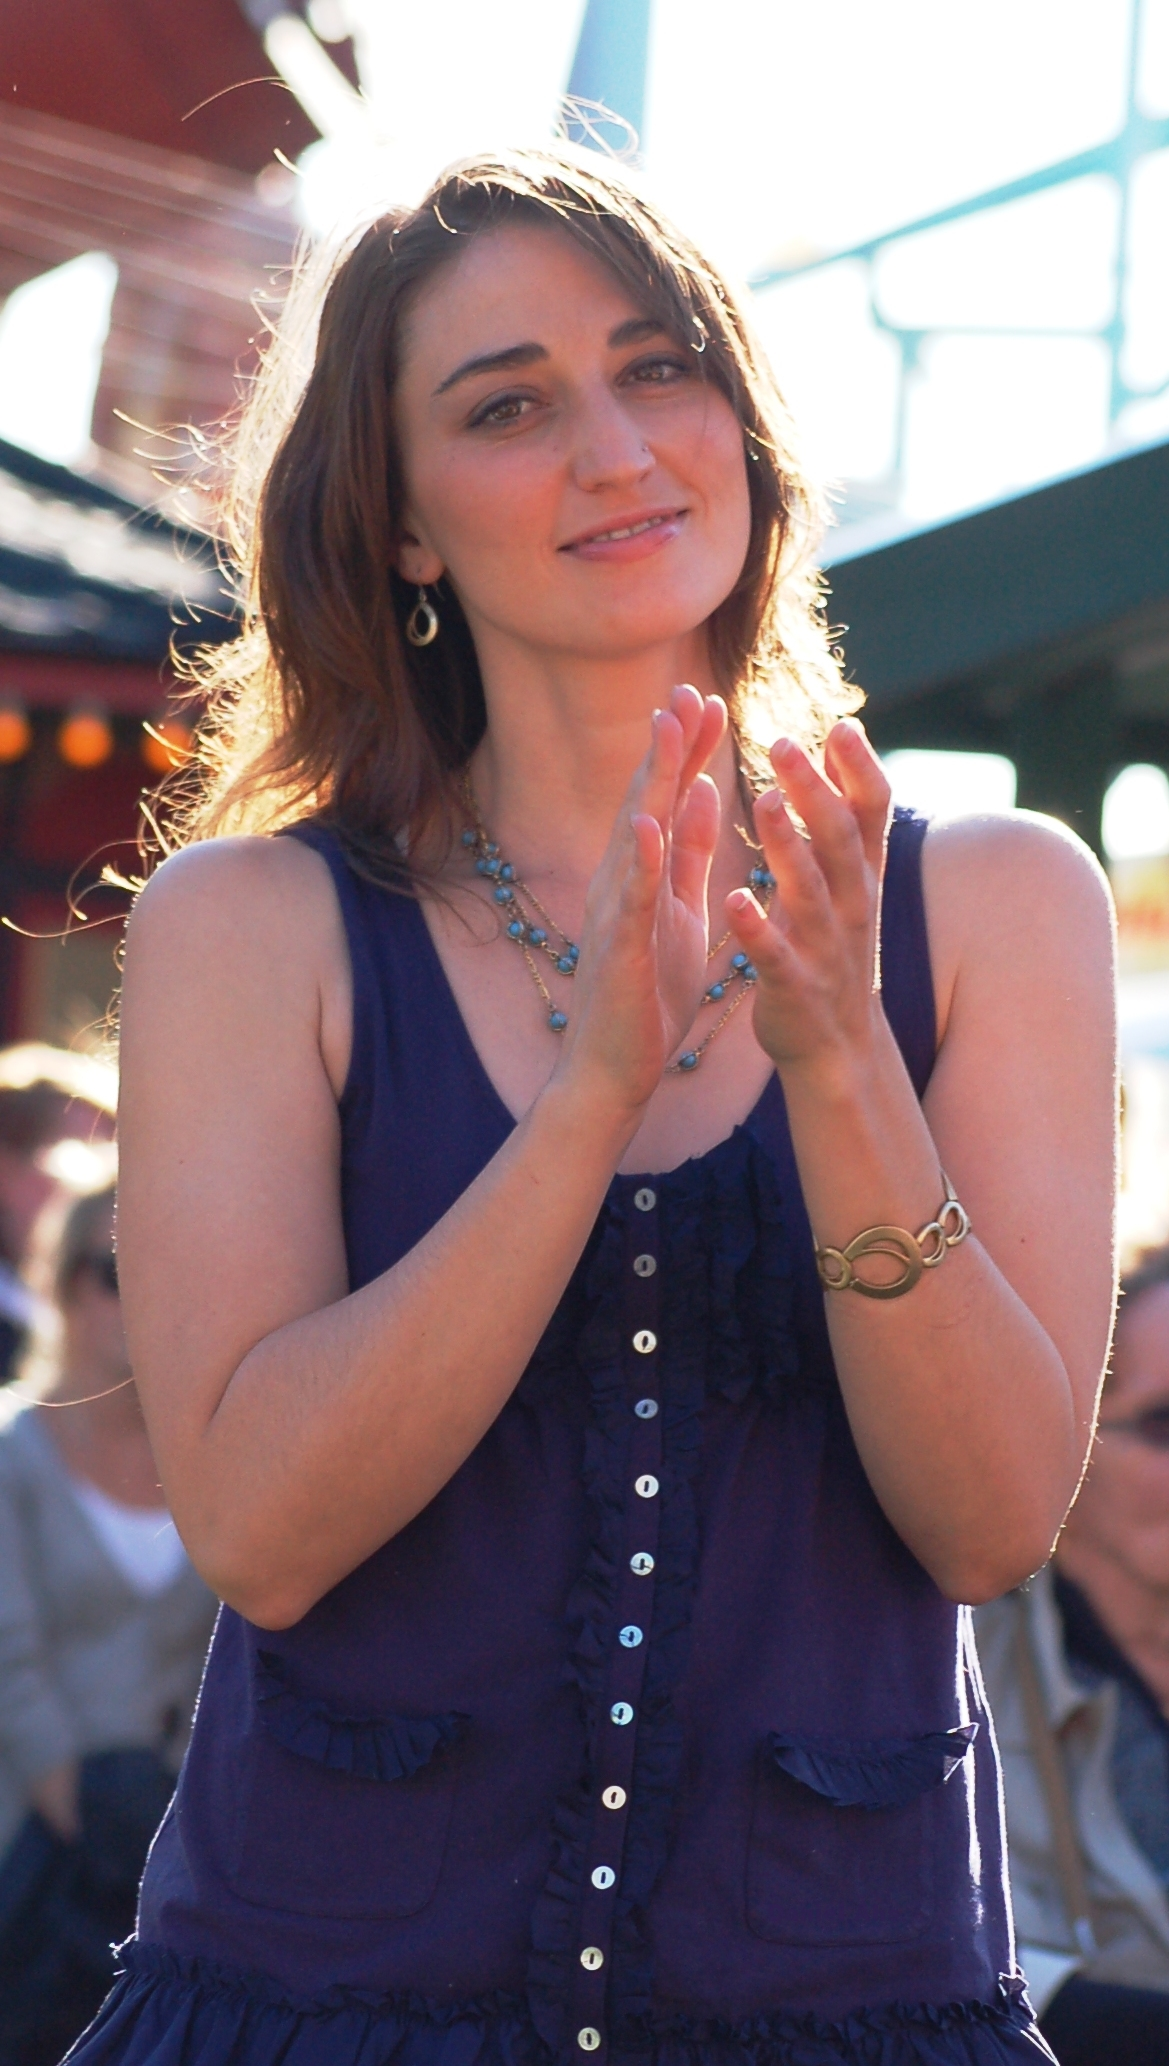 The 38-year old daughter of father Paul Bareilles and mother Bonnie Halvorsen Sara Bareilles in 2018 photo. Sara Bareilles earned a  million dollar salary - leaving the net worth at 12 million in 2018